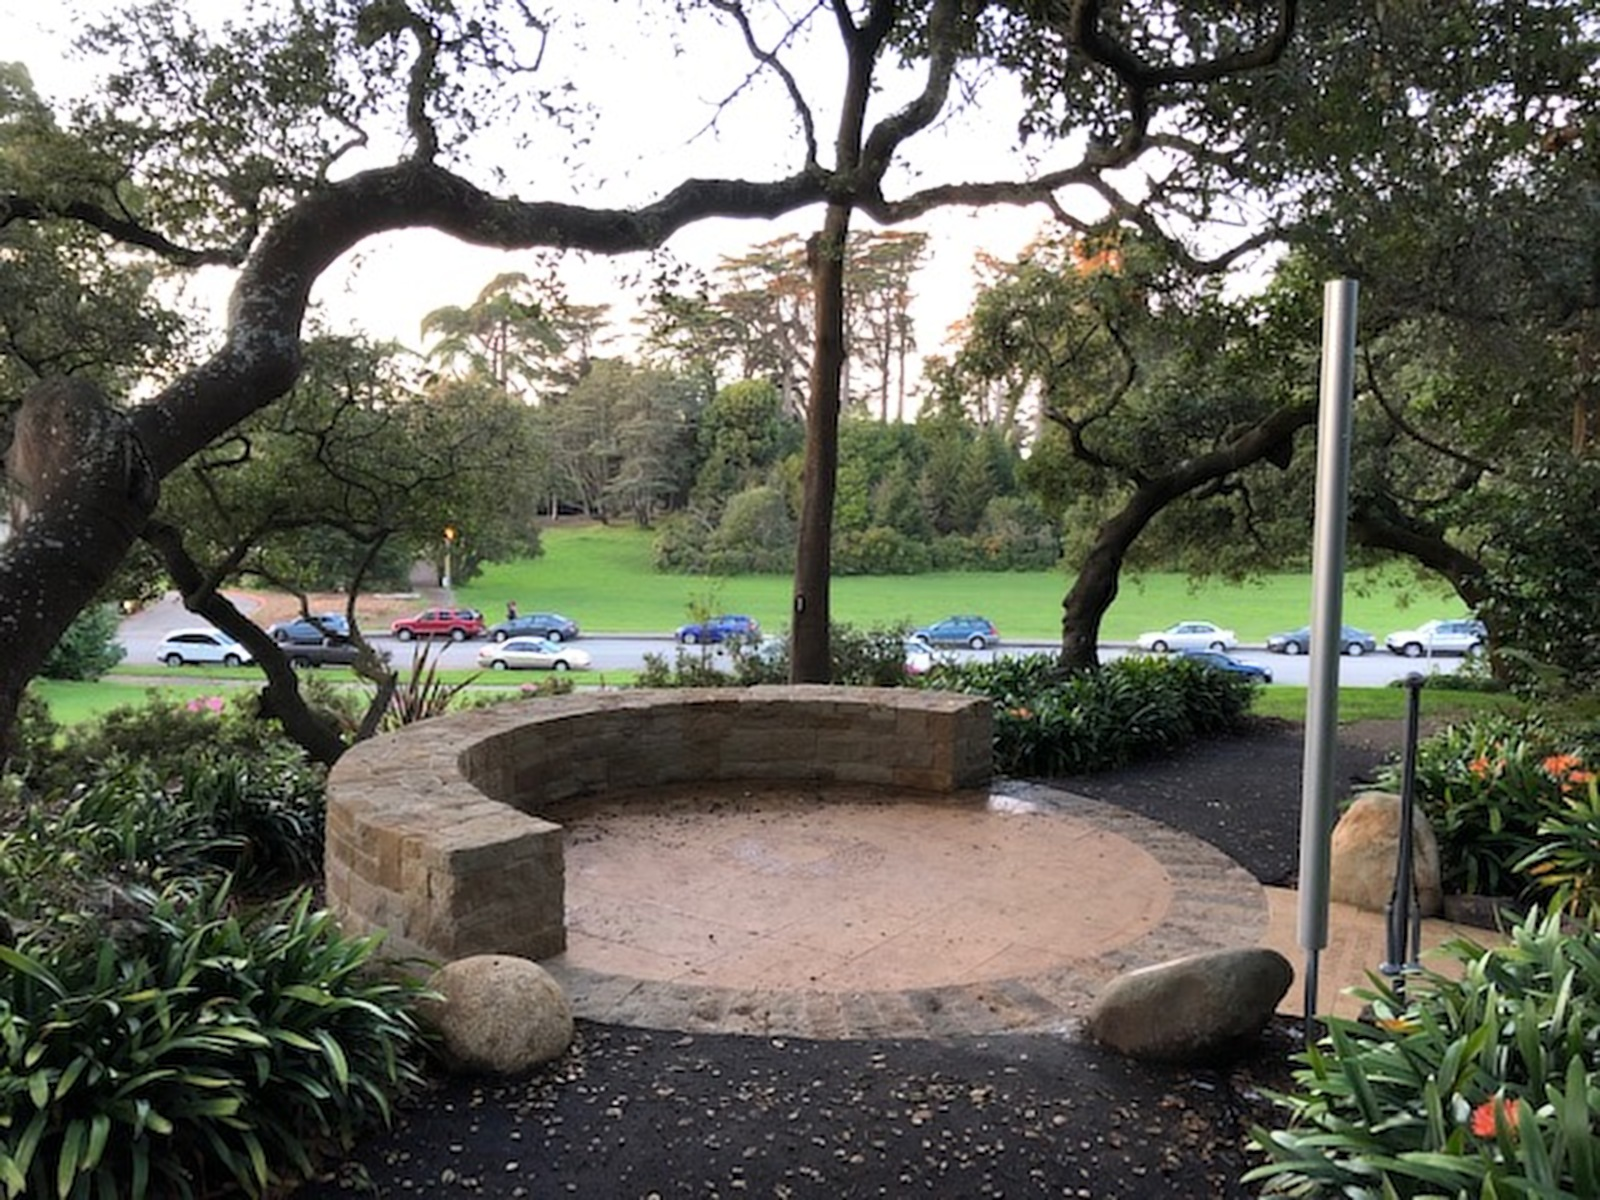 The Artists Portal in the National AIDS Memorial Grove, dedicated by the San Francisco Gay Men's Chorus on December 1, 2018, the 25th Anniversary of World AIDS Day